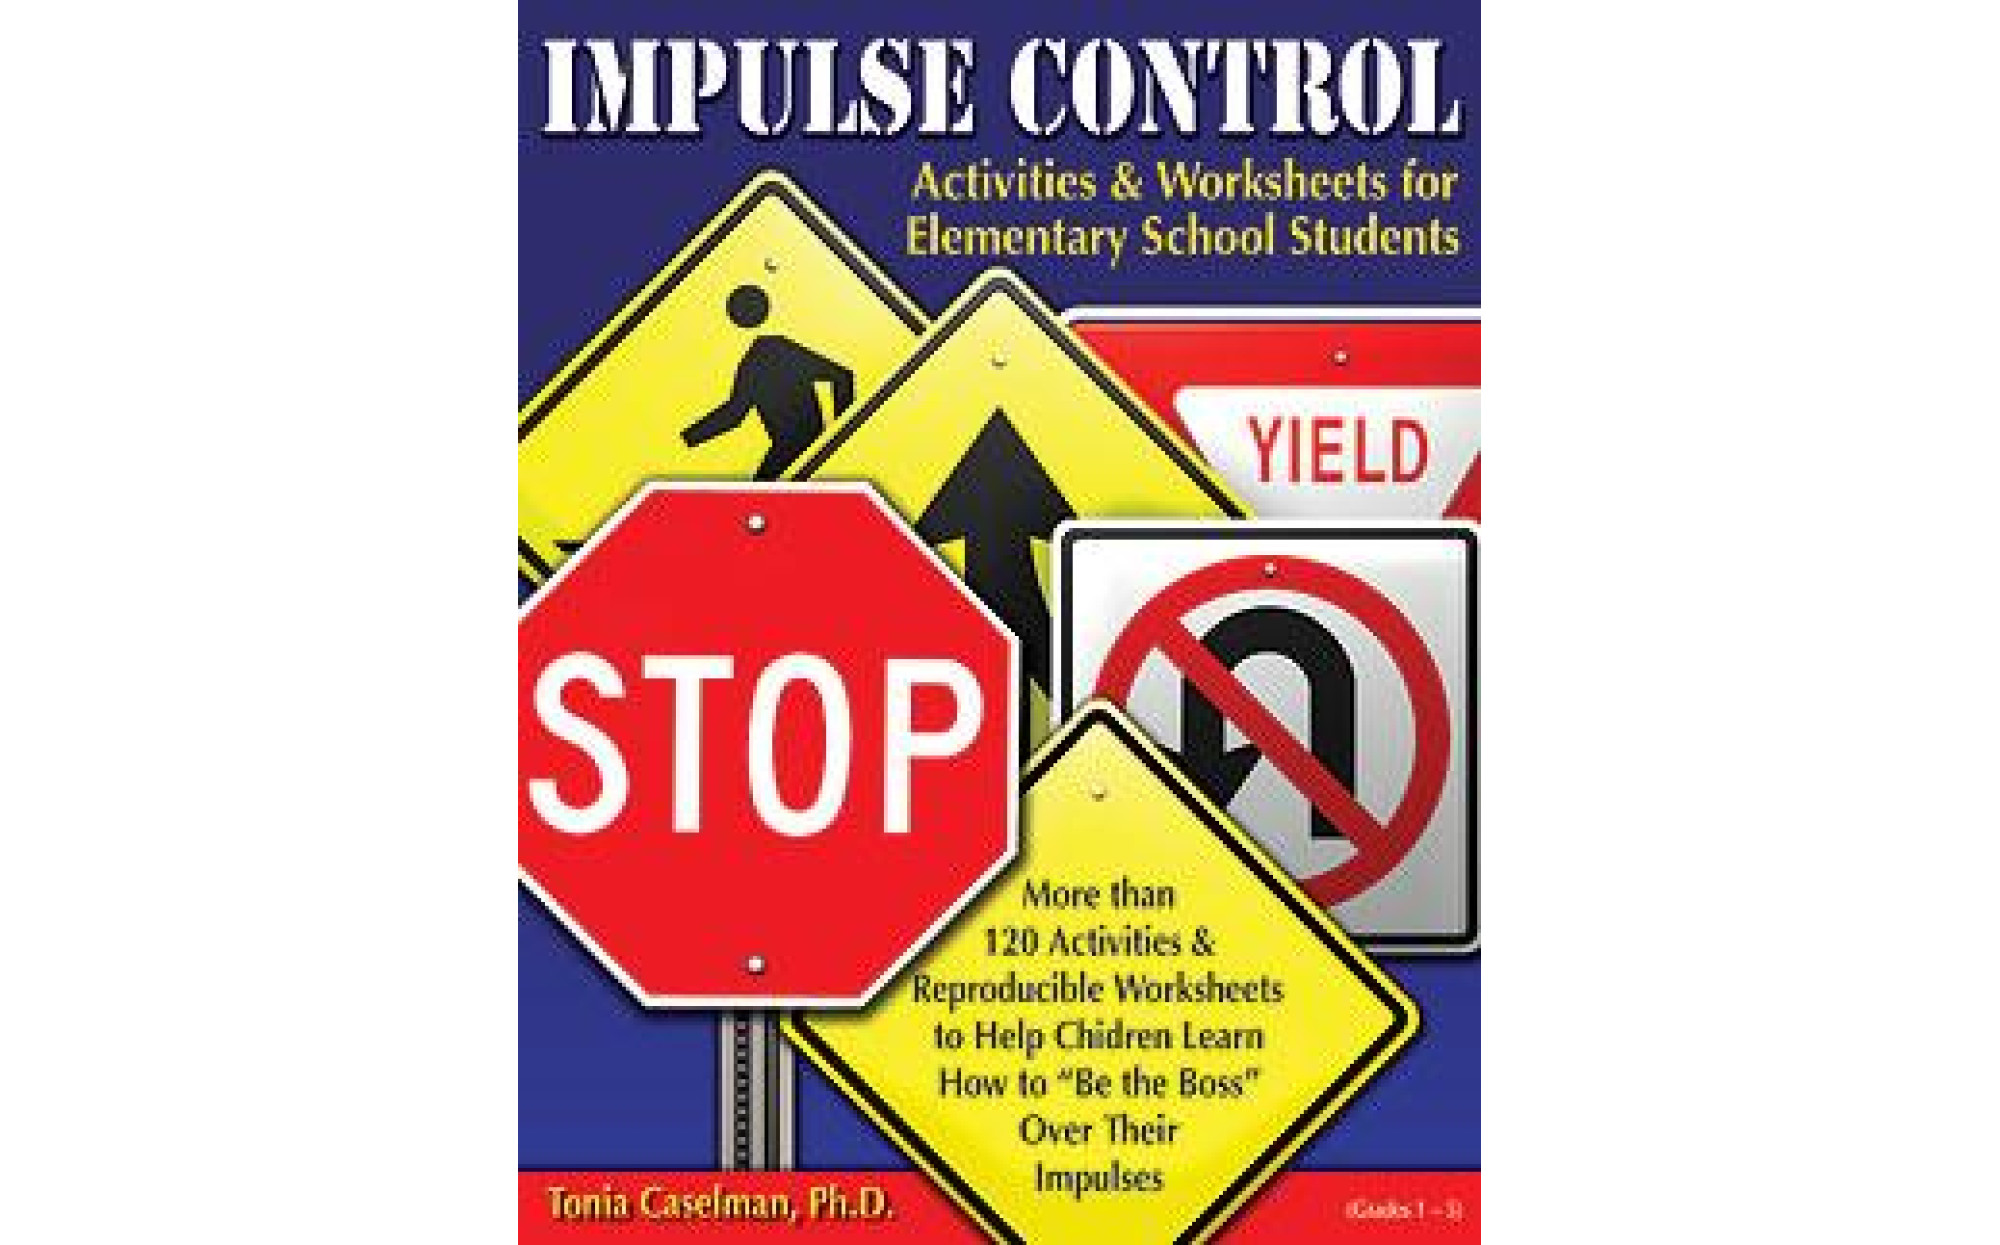 Impulse Control Activities For Elementary School Students